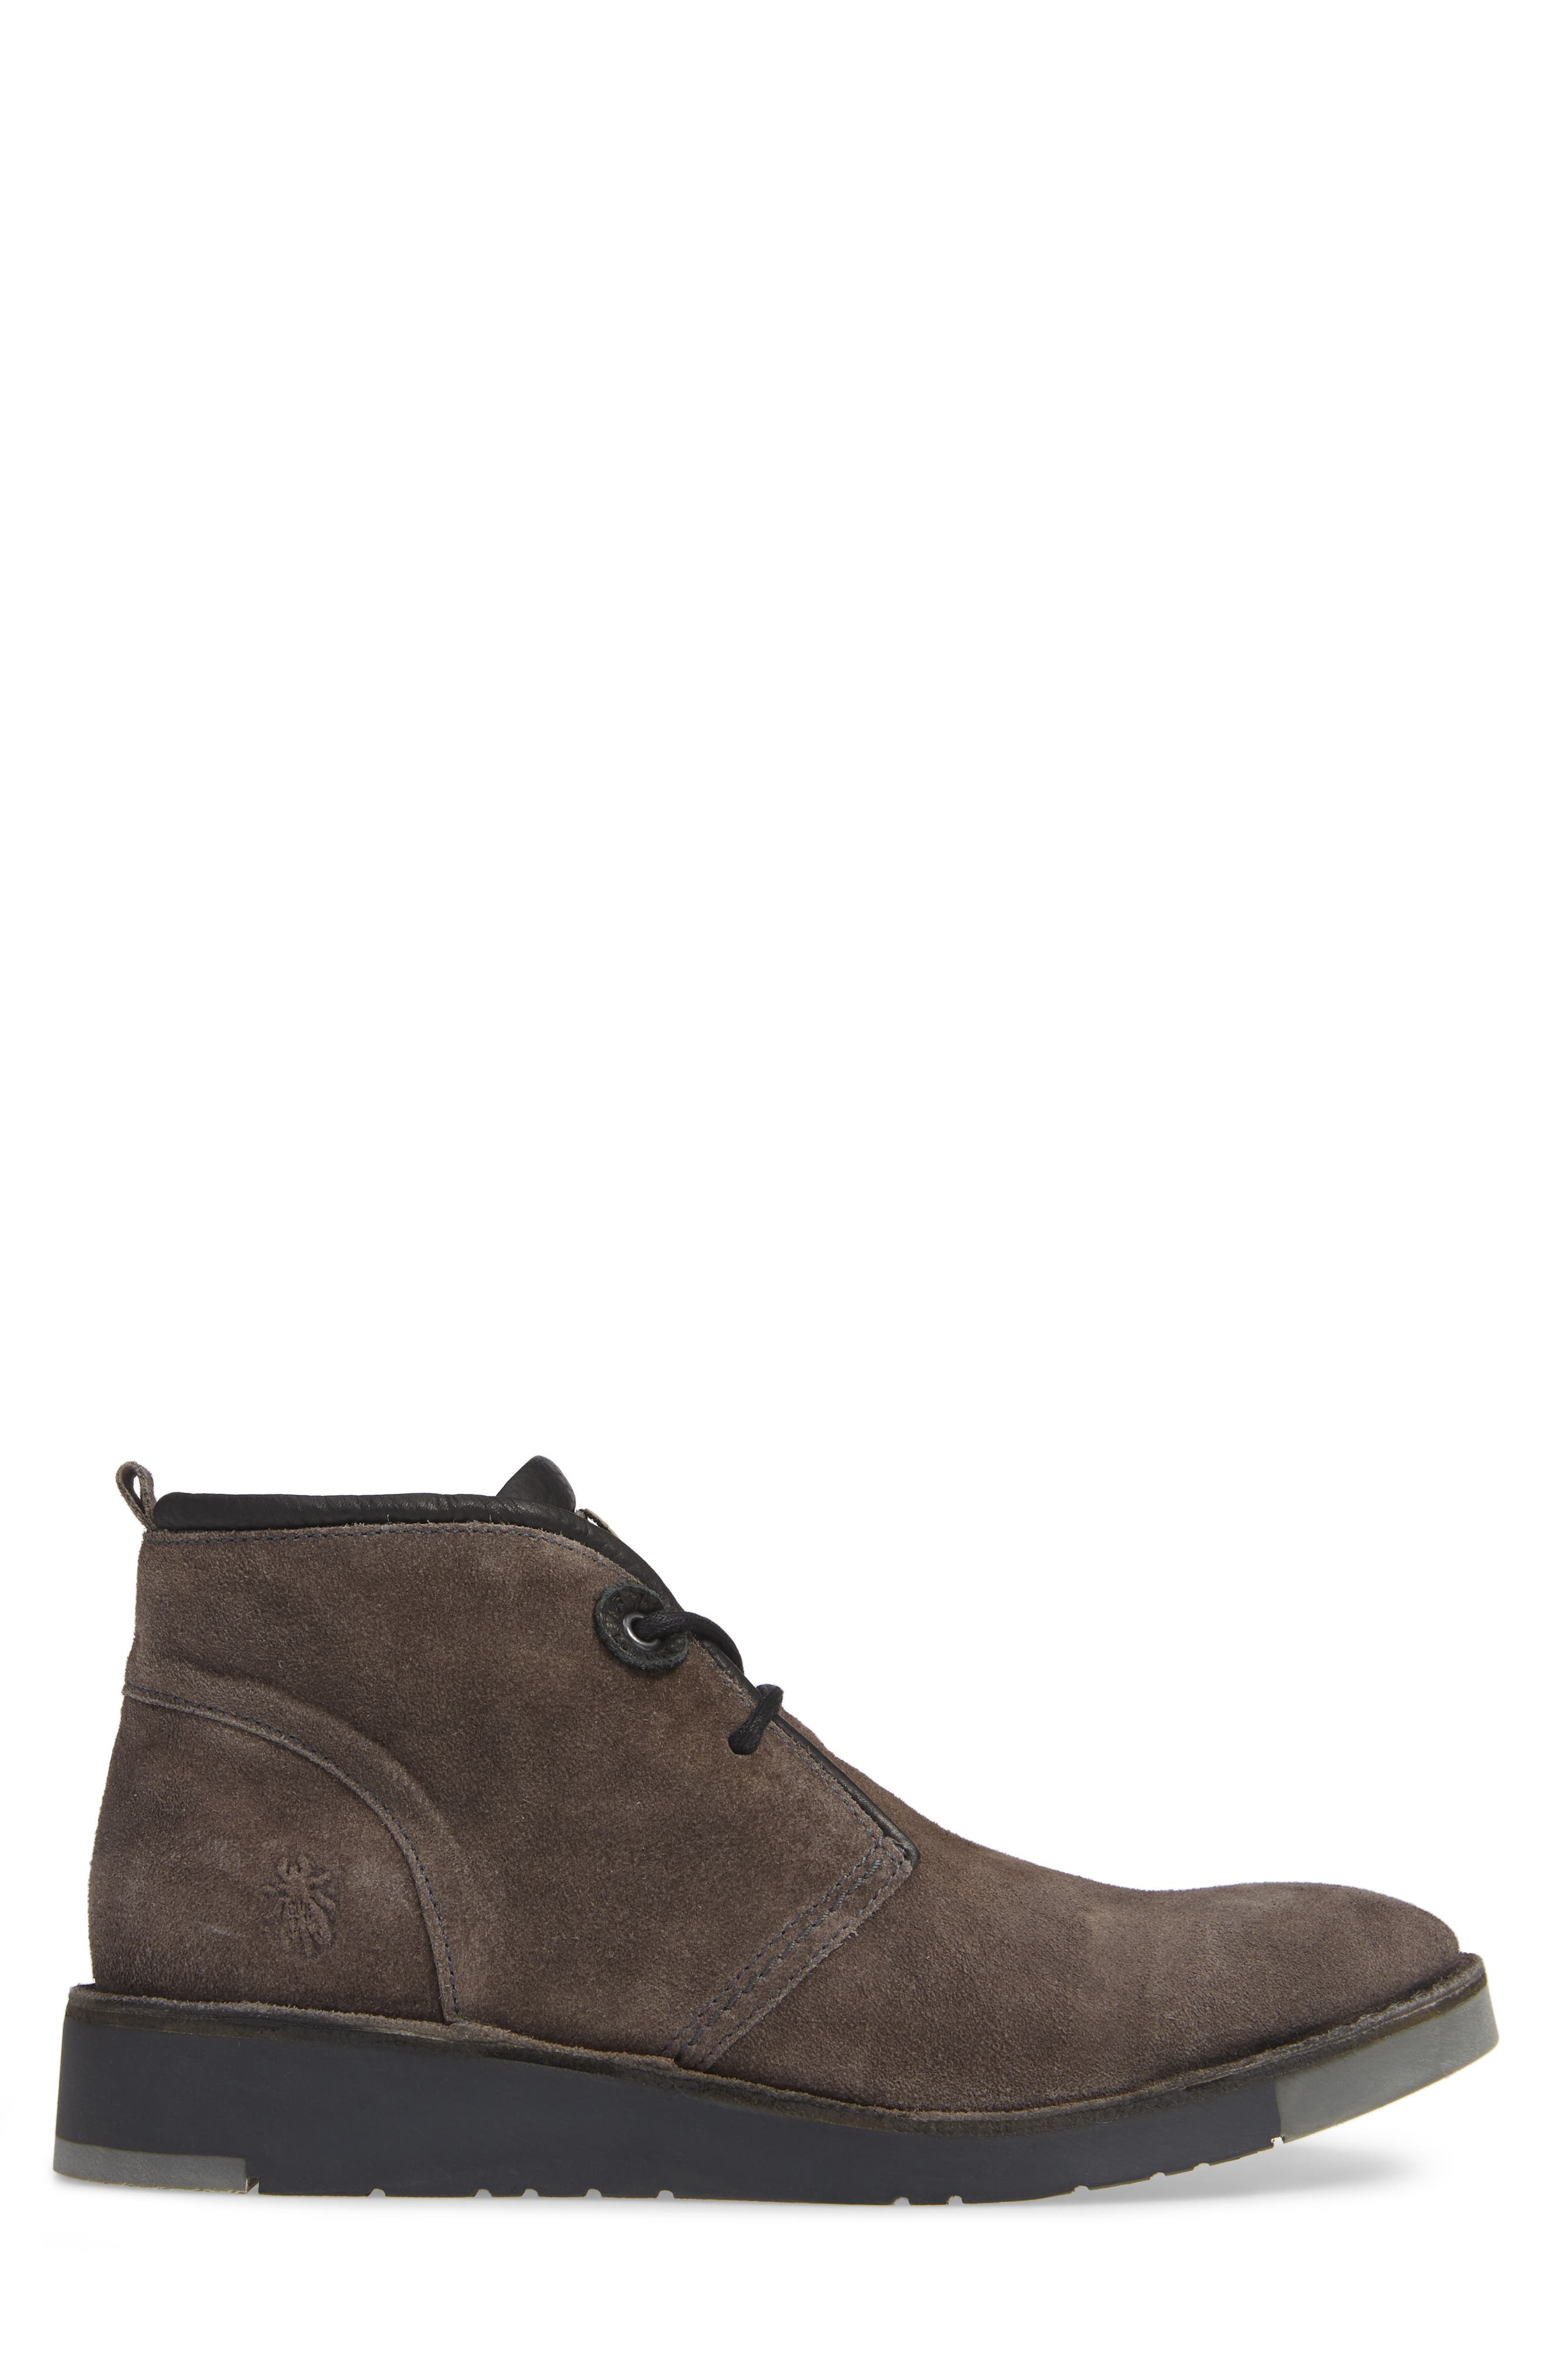 Sion Water Resistant Chukka Boot,                             Alternate thumbnail 3, color,                             GREY OIL SUEDE